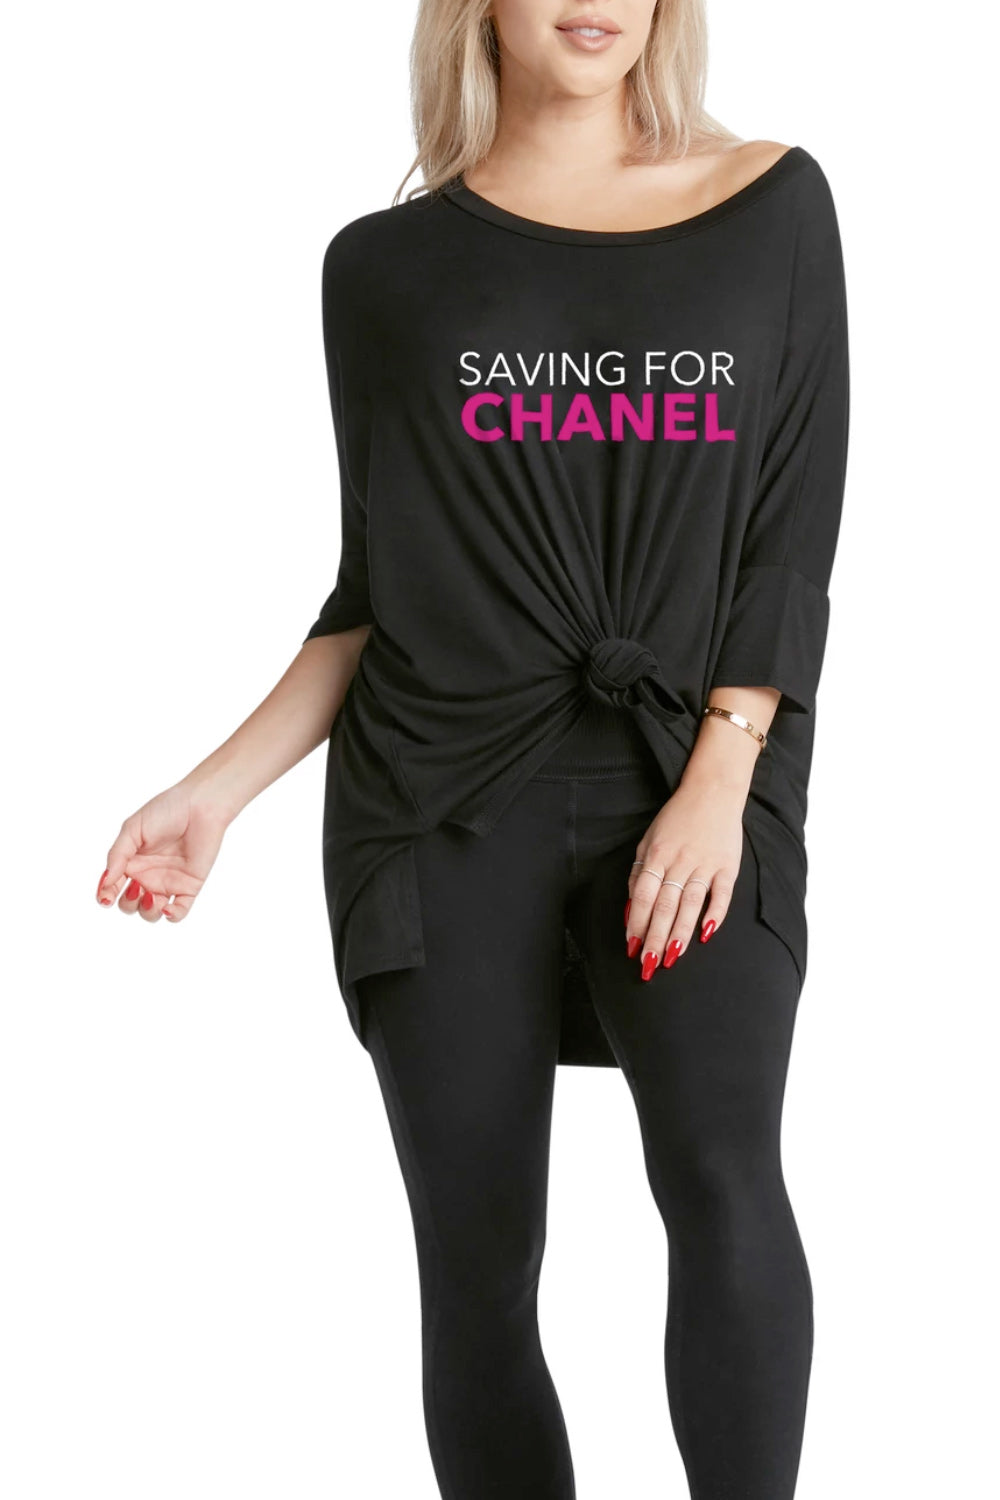 Mimi Tee- Saving for Chanel